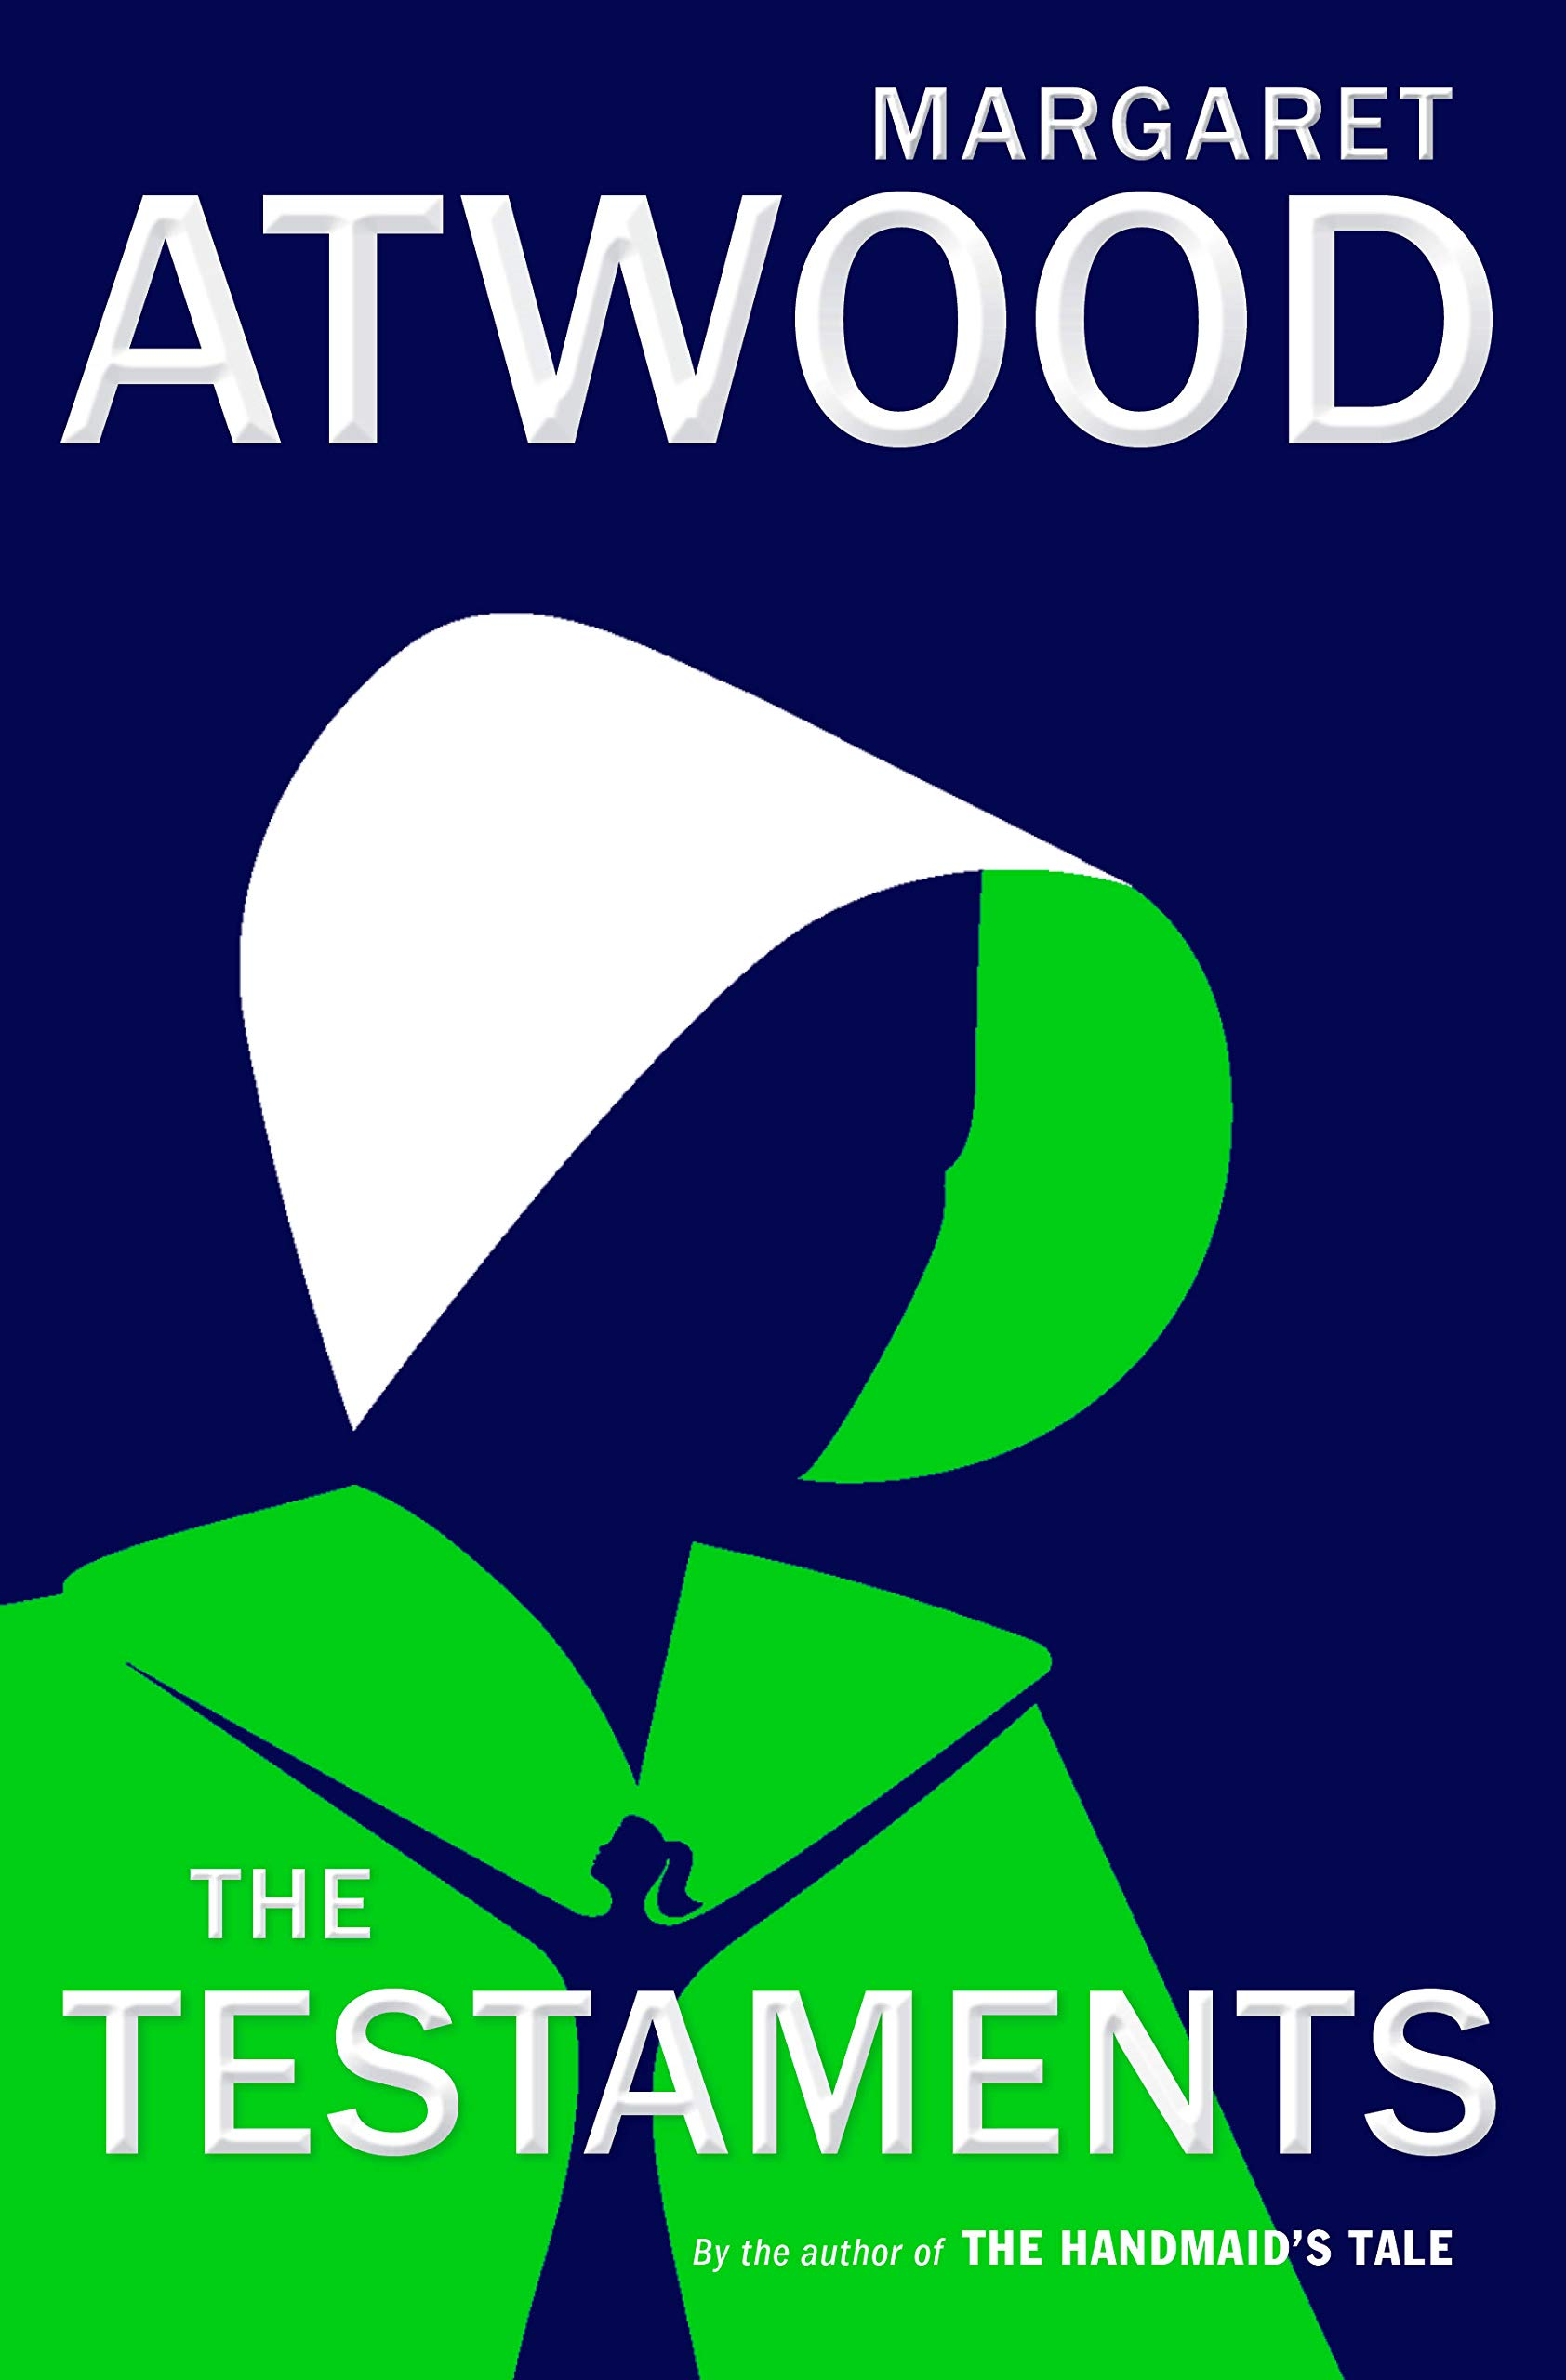 The Testaments - SYNOPSISMargaret Atwood's dystopian masterpiece, The Handmaid's Tale, is a modern classic. Now she brings the iconic story to a dramatic conclusion in this riveting sequel.More than fifteen years after the events of The Handmaid's Tale, the theocratic regime of the Republic of Gilead maintains its grip on power, but there are signs it is beginning to rot from within. At this crucial moment, the lives of three radically different women converge, with potentially explosive results.Two have grown up as part of the first generation to come of age in the new order. The testimonies of these two young women are joined by a third voice: a woman who wields power through the ruthless accumulation and deployment of secrets.As Atwood unfolds The Testaments, she opens up the innermost workings of Gilead as each woman is forced to come to terms with who she is, and how far she will go for what she believes.'Dear Readers: Everything you've ever asked me about Gilead and its inner workings is the inspiration for this book. Well, almost everything! The other inspiration is the world we've been living in.' Margaret Atwood'The literary event of the year.' Guardian'A savage and beautiful novel, and it speaks to us today, all around the world, with particular conviction and power… The bar is set particularly high for Atwood and she soars over it' Peter Florence, Booker Prize Chair of Judges, Guardian